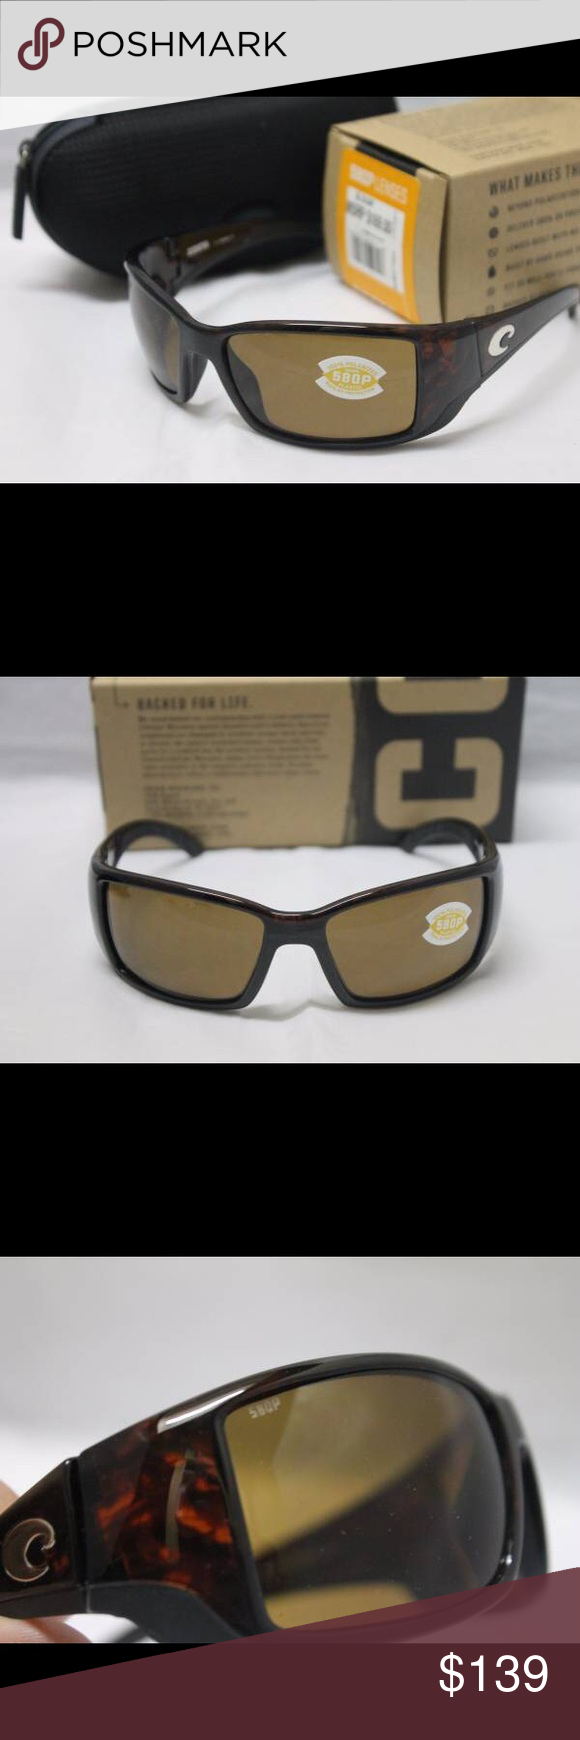 Costa Del Mar Blackfin 580P Polarized Sunglasses Brand new in the box Costa Del Mar Sunglasses.  100% authentic direct from Costa.  Model:  Blackfin Frame Color:  Tortoise Lens Color:  580P Amber POLARIZED Model Number:  BL10OAP MSRP:  $169 + tax  Included:  Sunglasses, Costa box, Costa zippered case, paperwork & sticker  Great pair of Polarized Costas  Many other glasses posted with new Costa styles added each week..  Thank you for looking and have a wonderful day! Costa Del Mar Accessories…